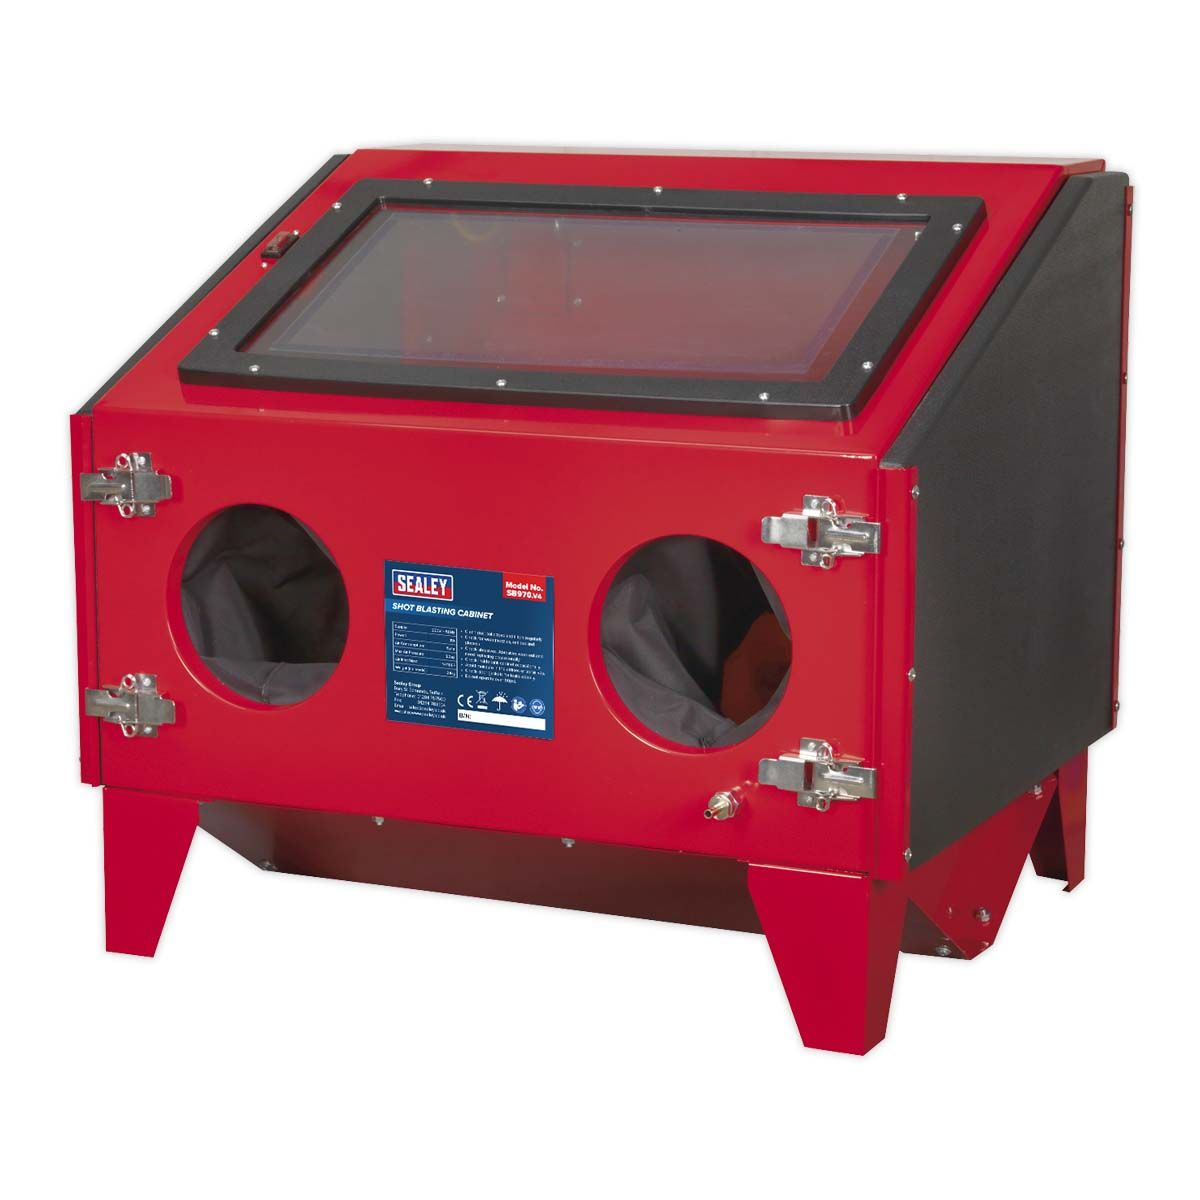 Sealey Shot Blasting Cabinet Double Access 695 x 580 x 625mm